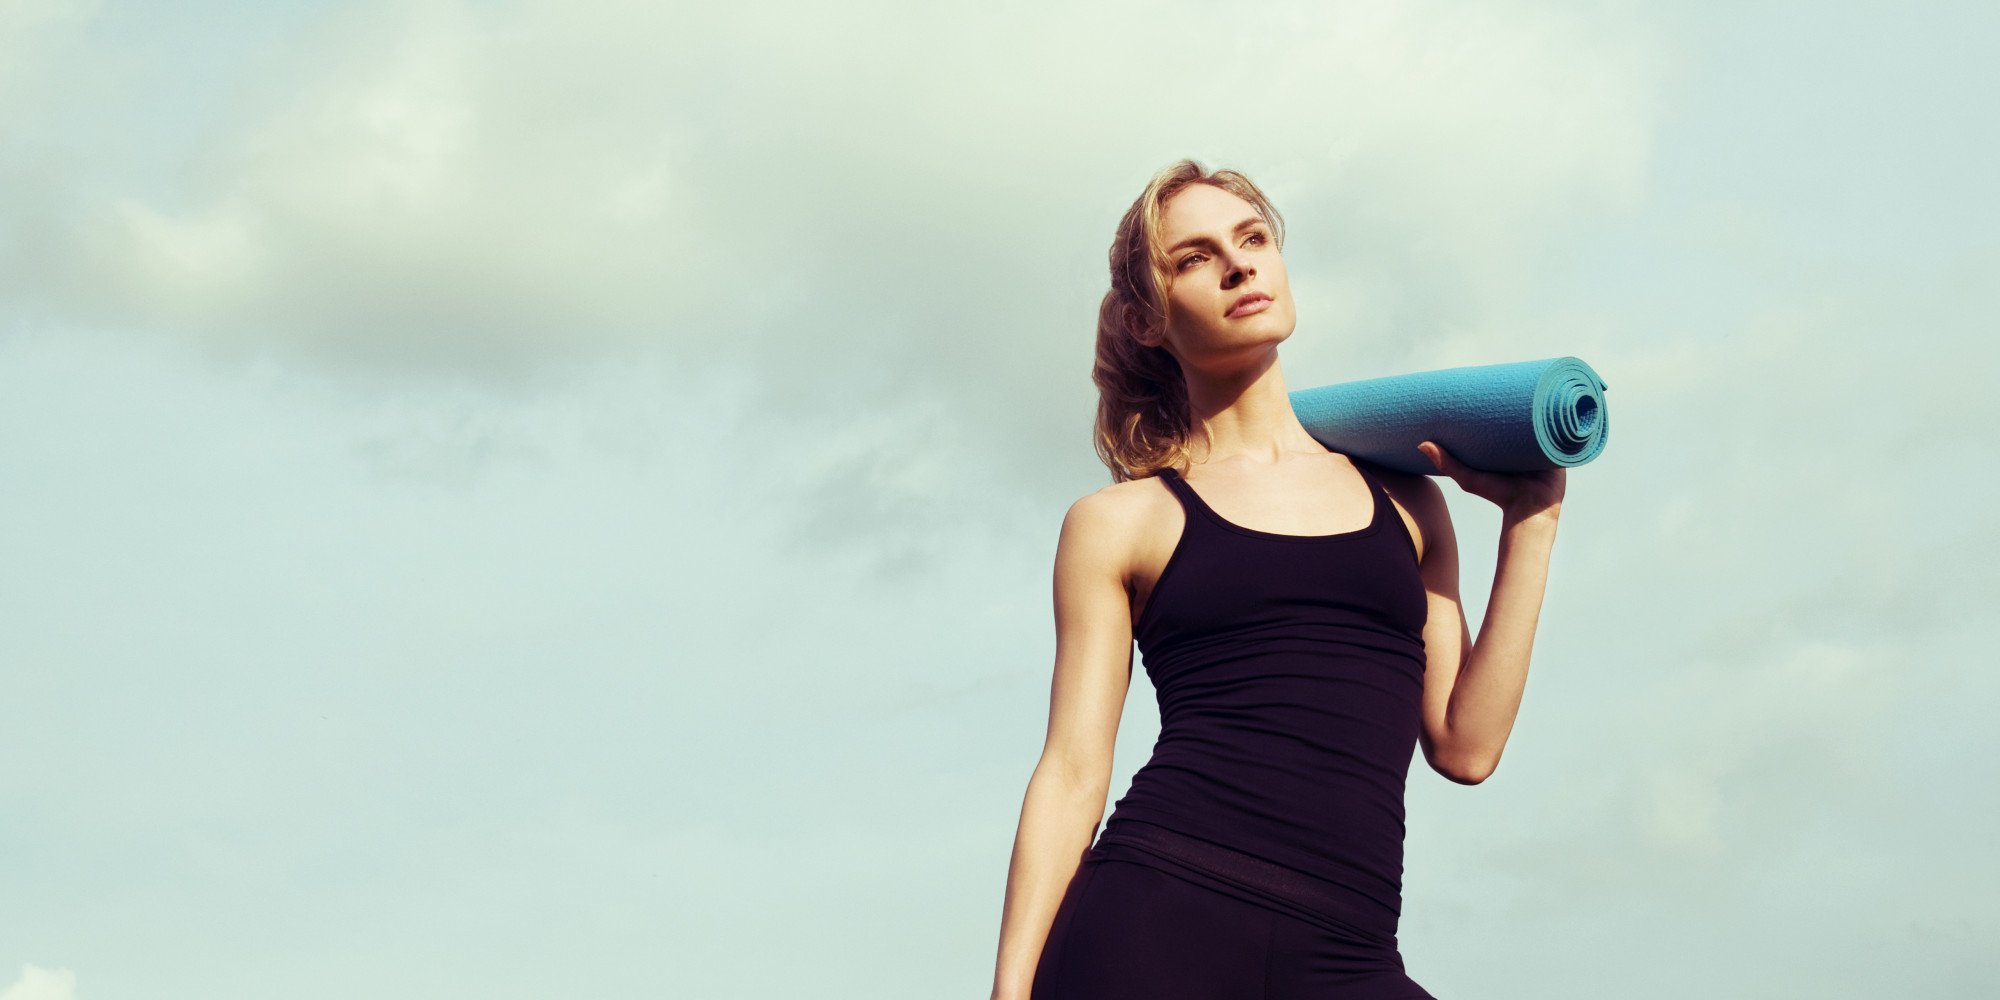 Which Yoga exercises should I do for fat loss? 1